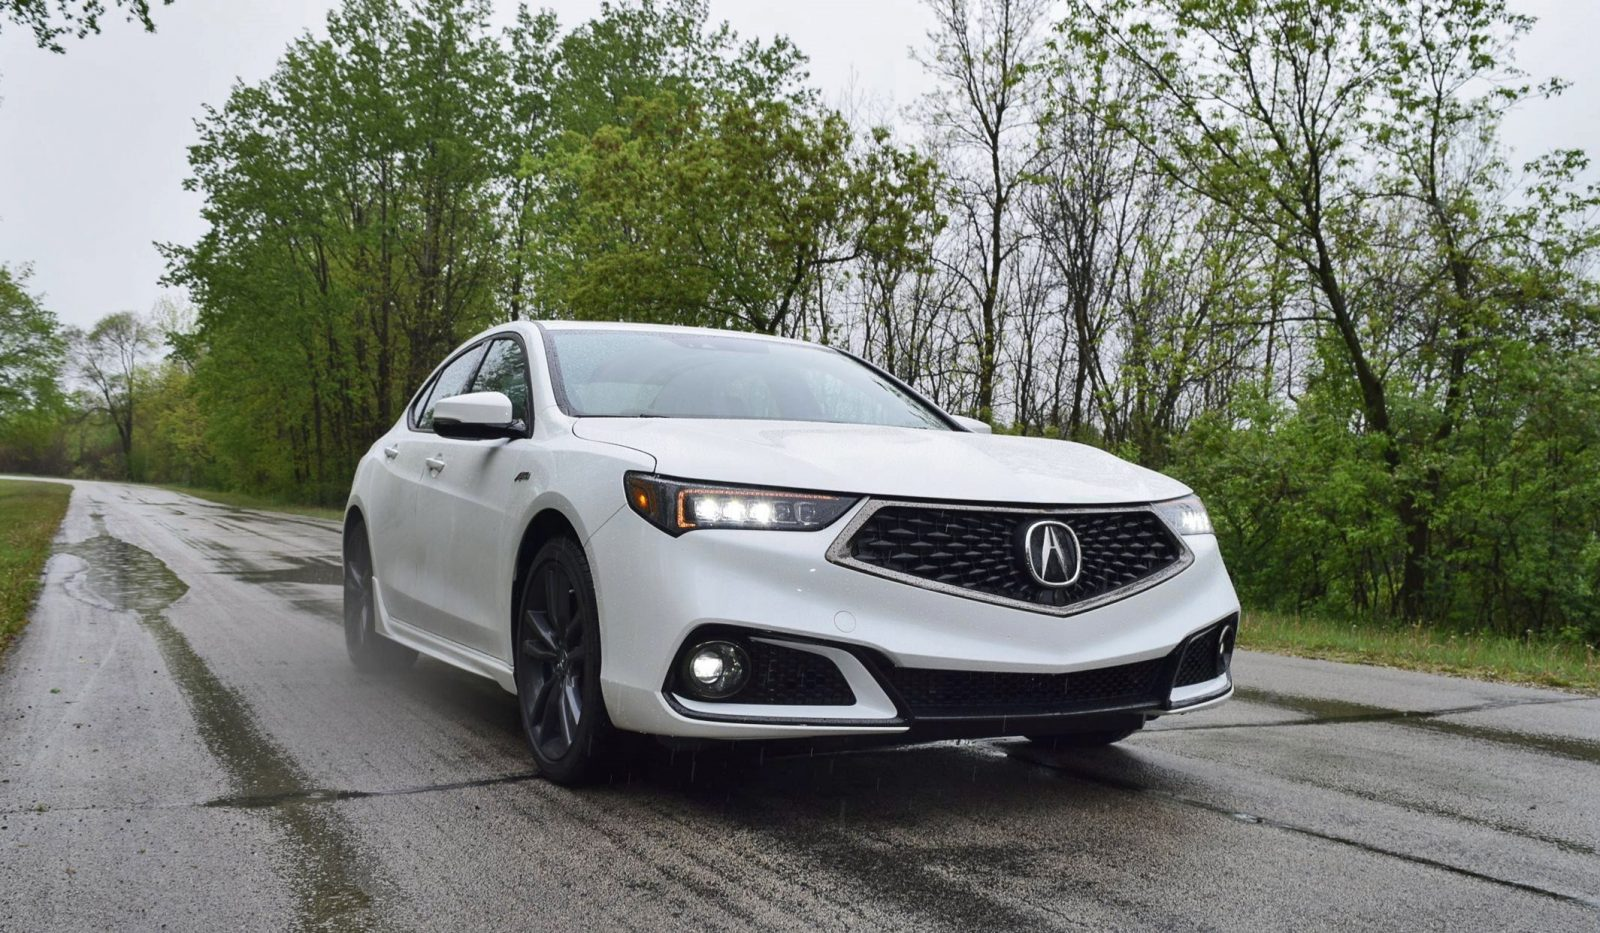 2018 Acura TLX A-Spec 29